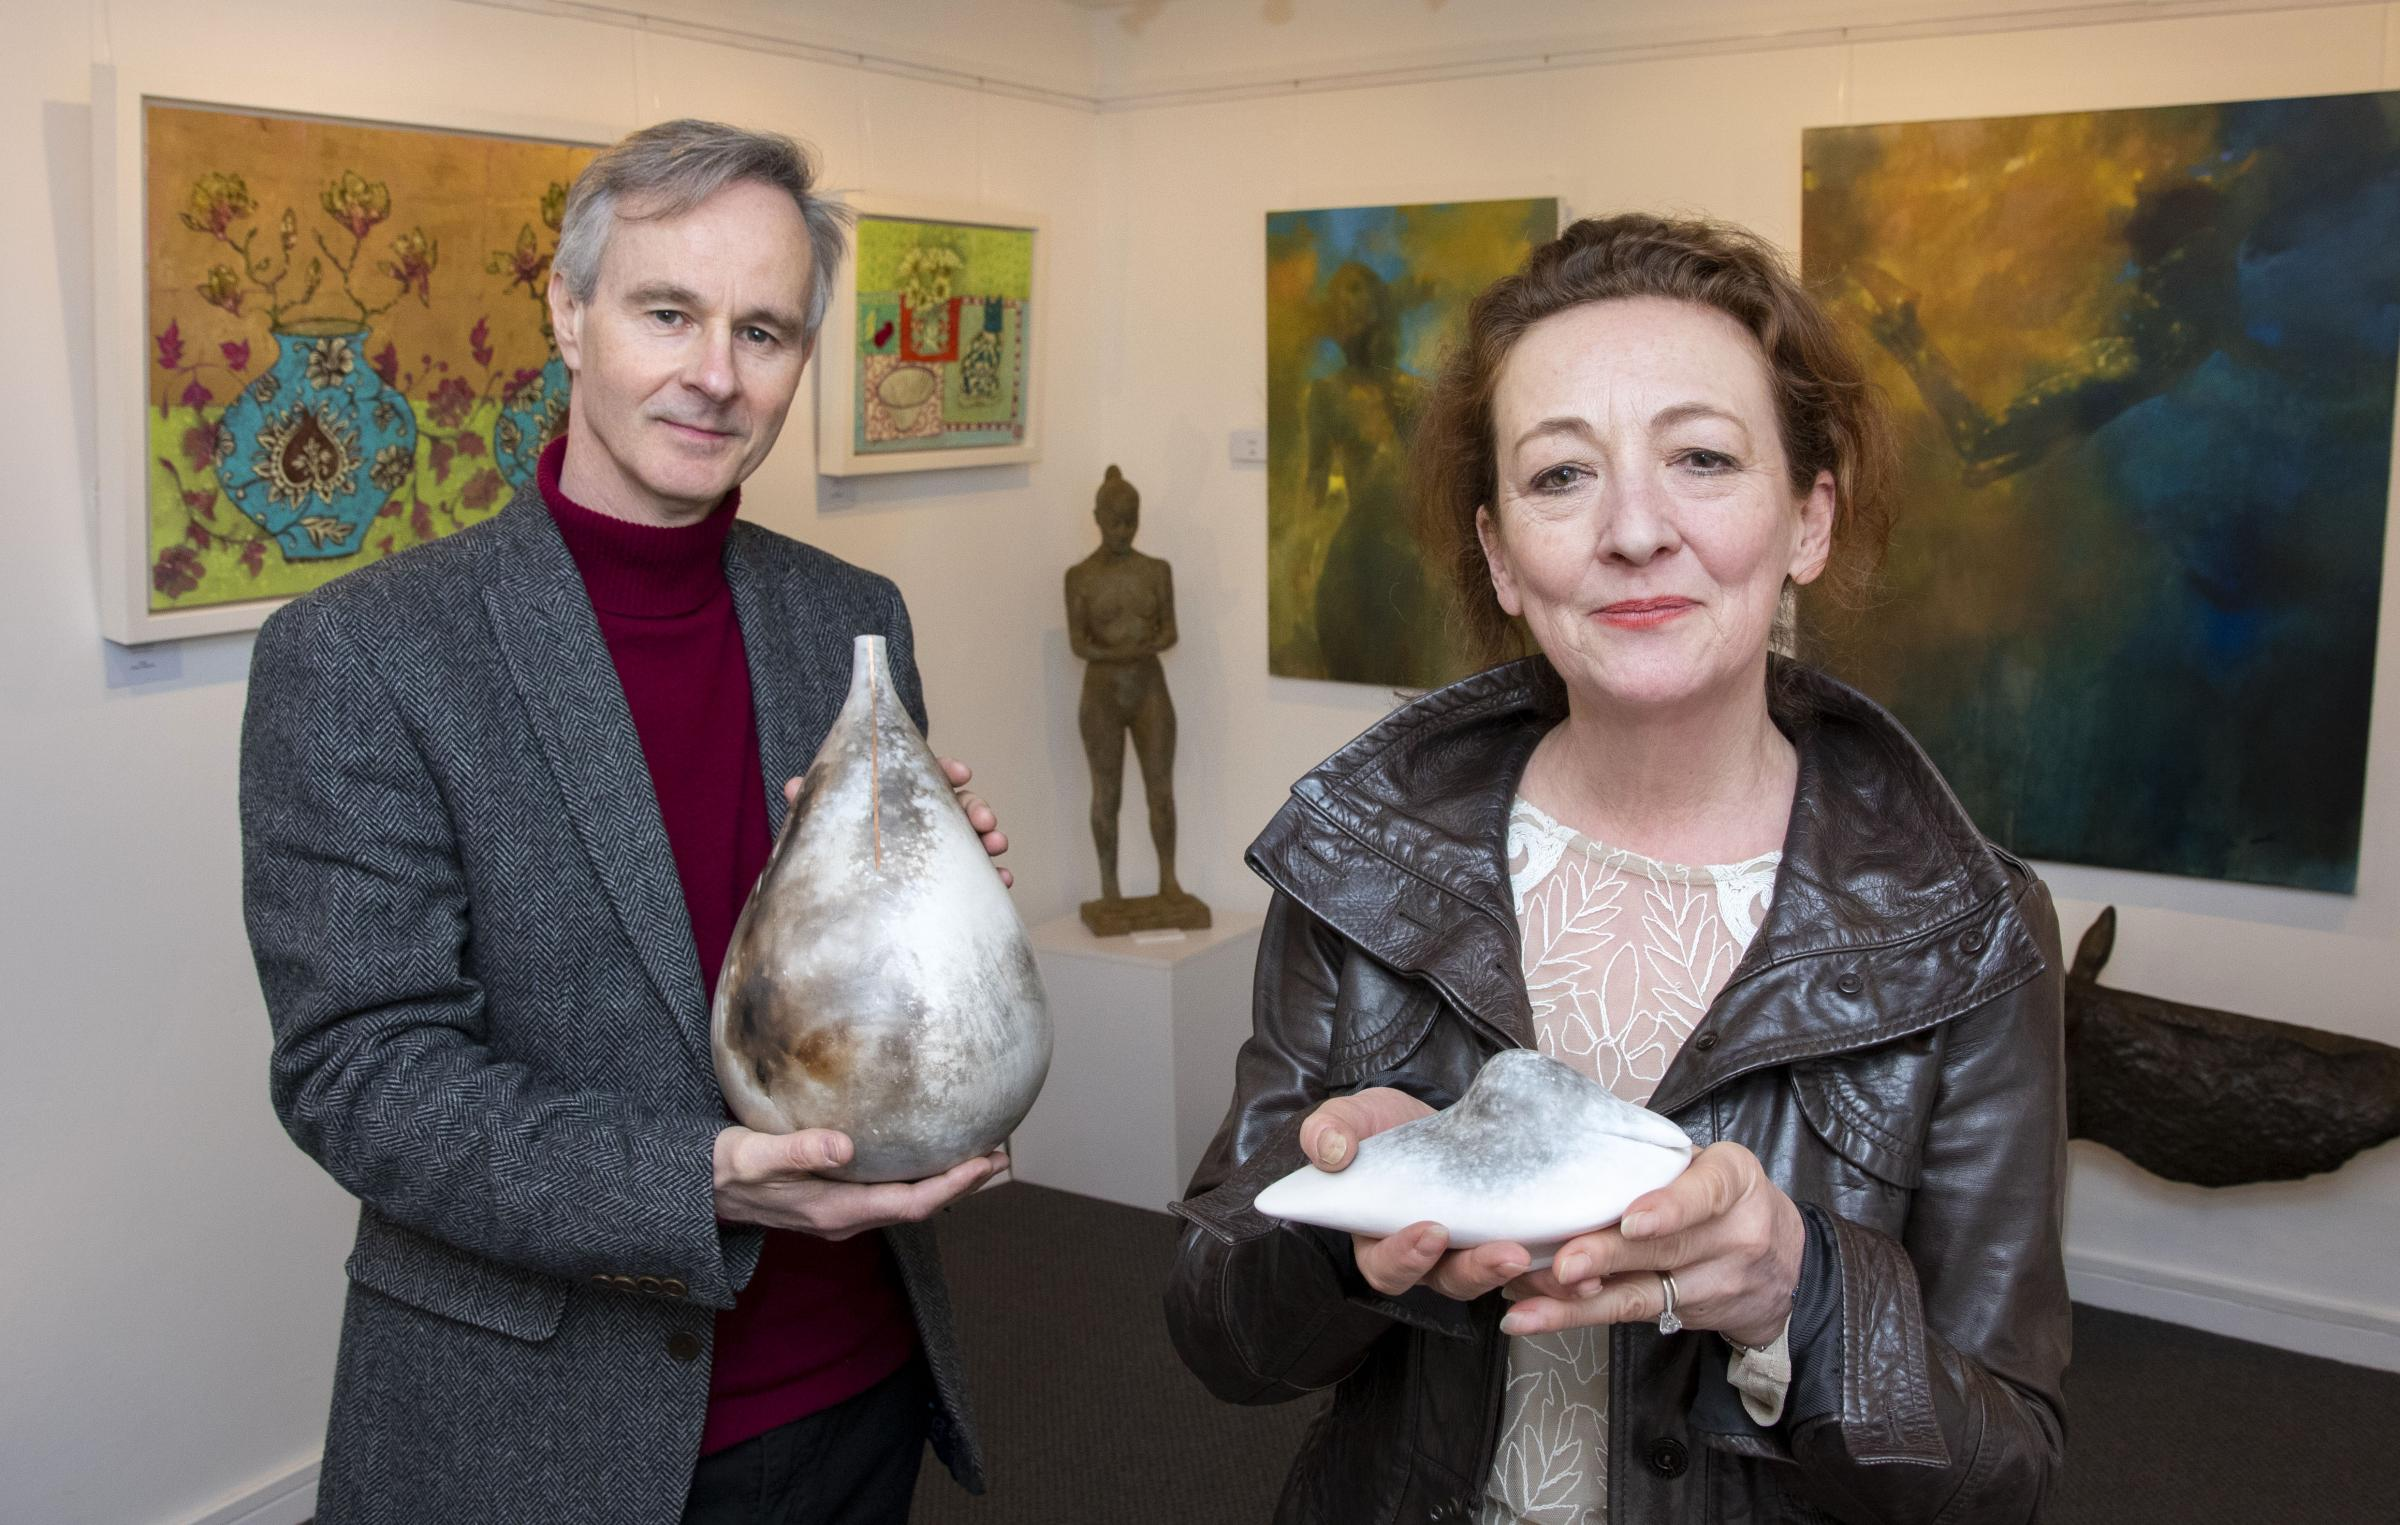 OPEN: The new Ledbury Gallery. Seen here, from the left - Brent Blair, owner and Kathryn Roberts, gallery assistant